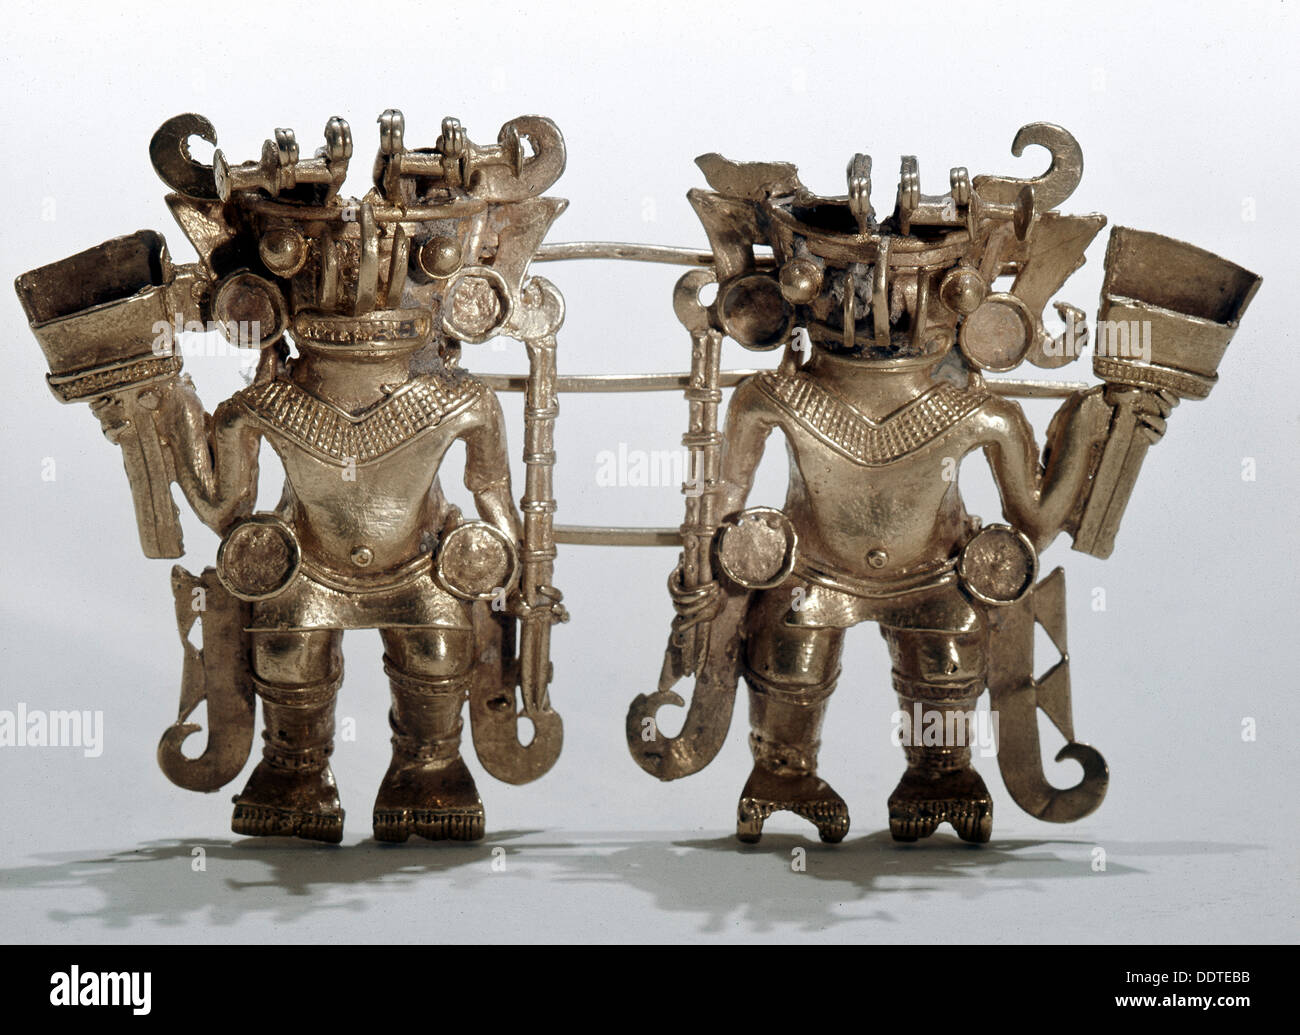 Tairona tumbaga figure-pendant, possibly depicting two noblemen or chiefs, Colombia, 1000-1400. Artist: Werner Forman - Stock Image